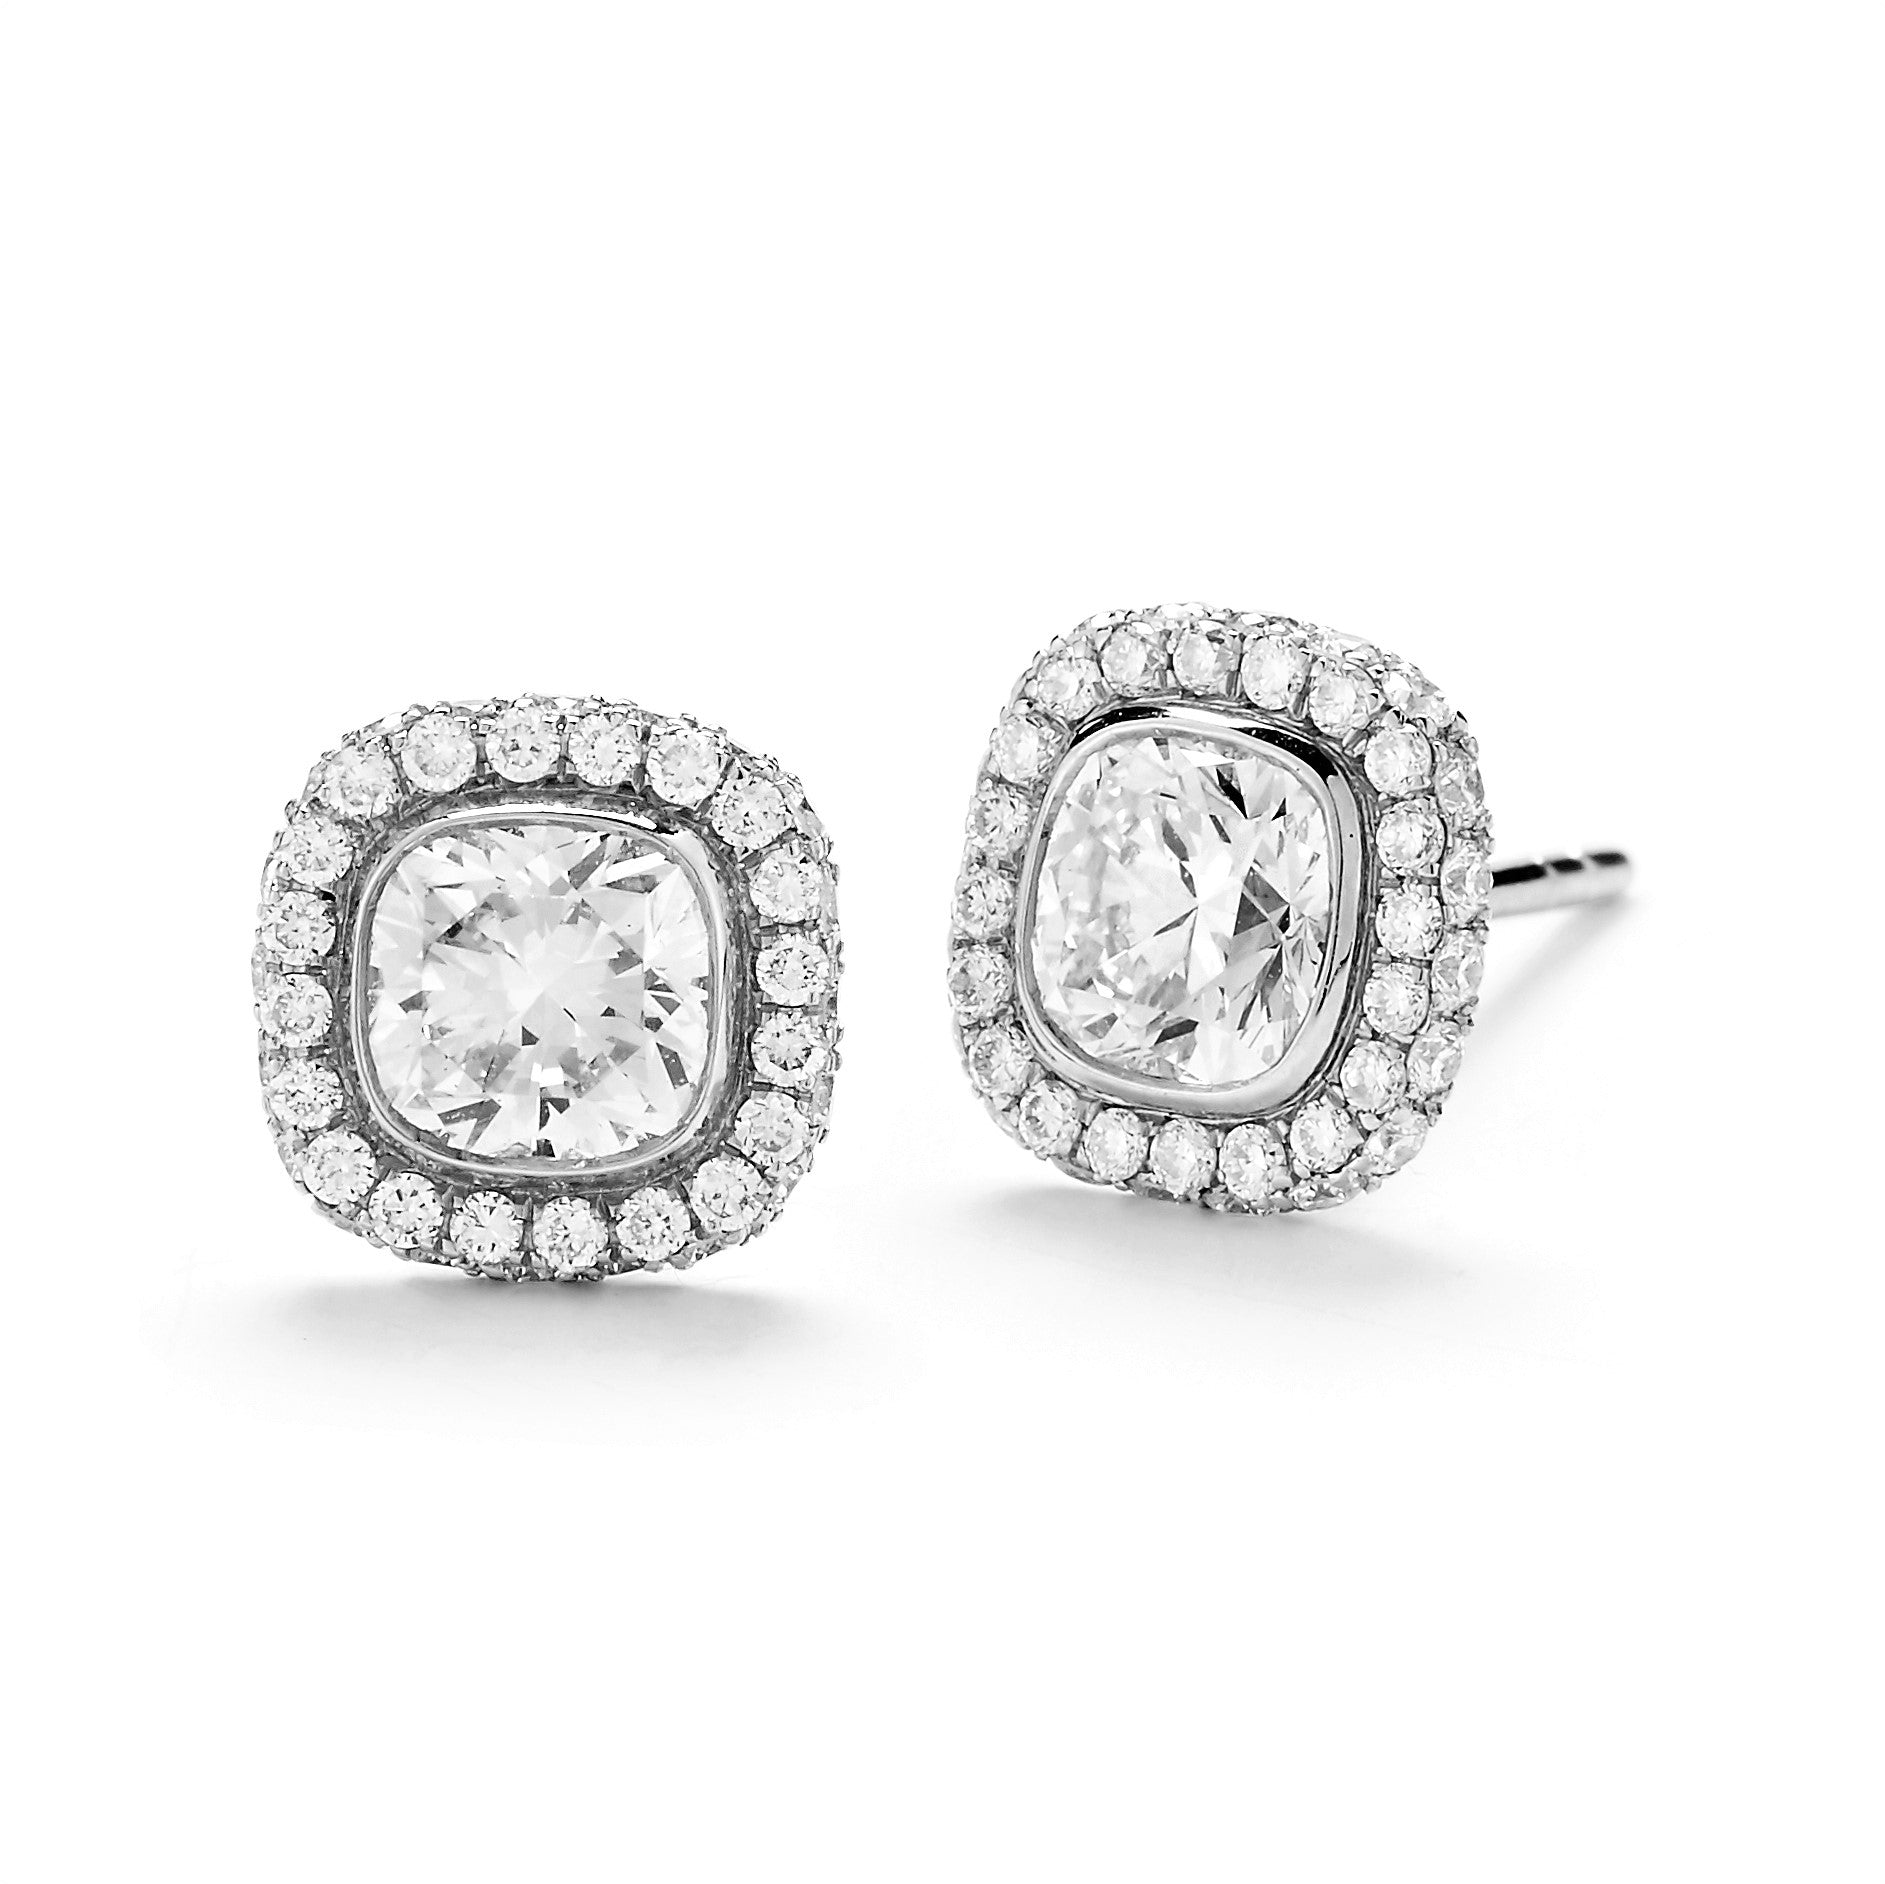 Diamond Halo Stud Earrings, White Gold Cushion Cut - Talisman Collection Fine Jewelers